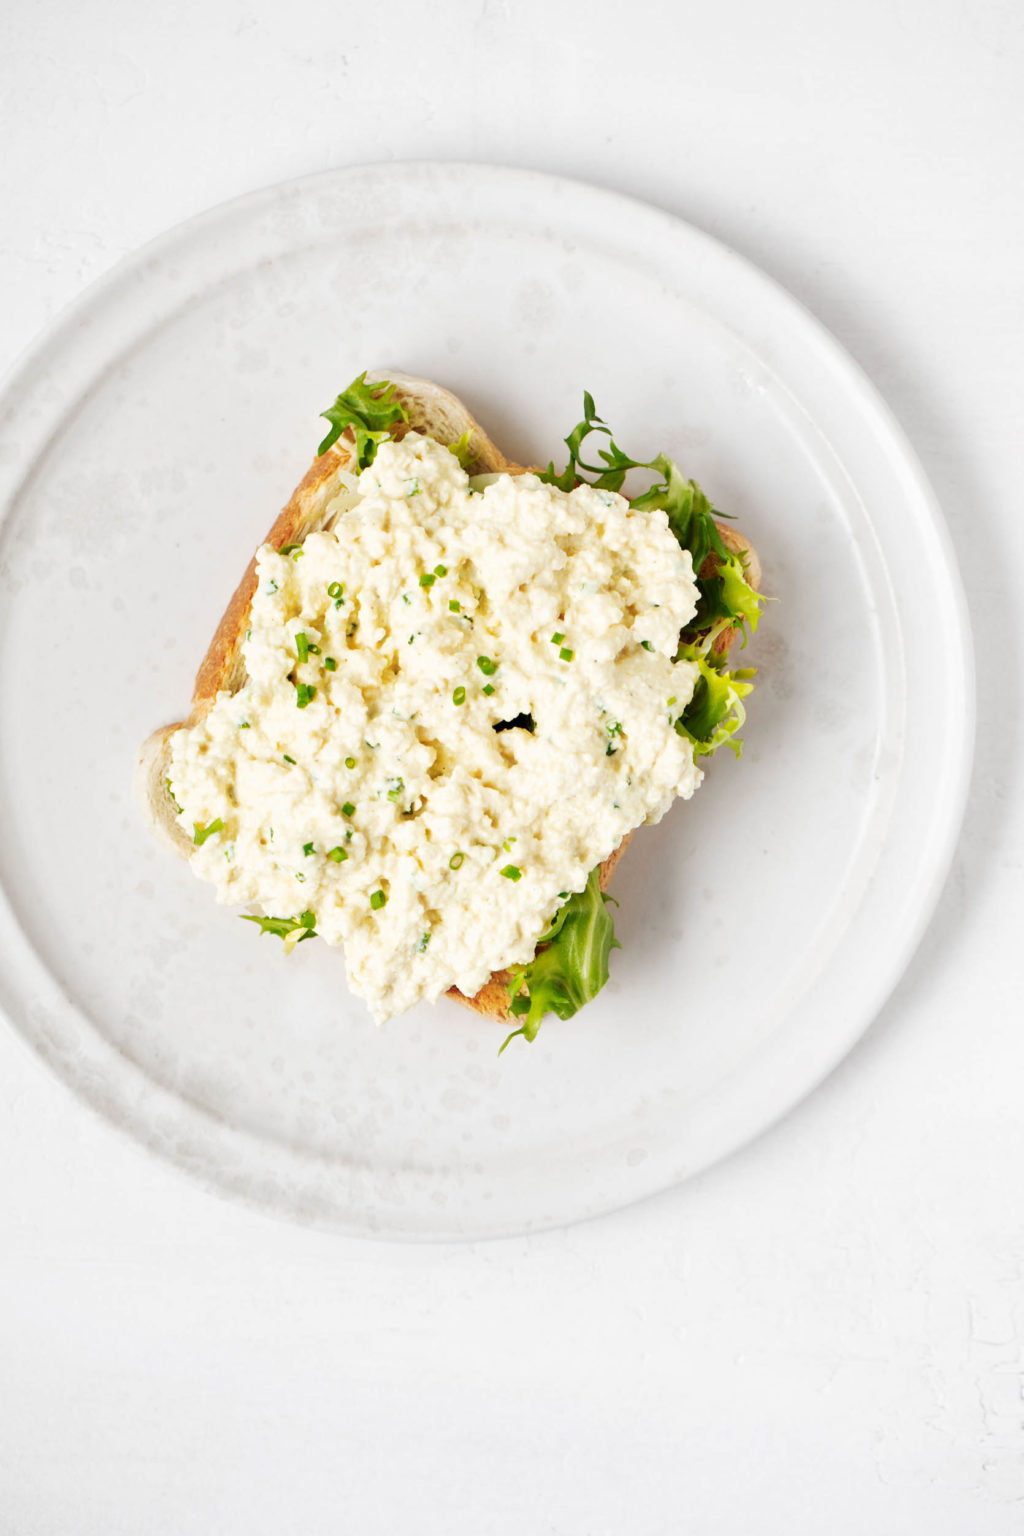 A slice of vegan tofu and egg salad and a slice of green lettuce covered a slice of toast. It is placed on a white ceramic plate.